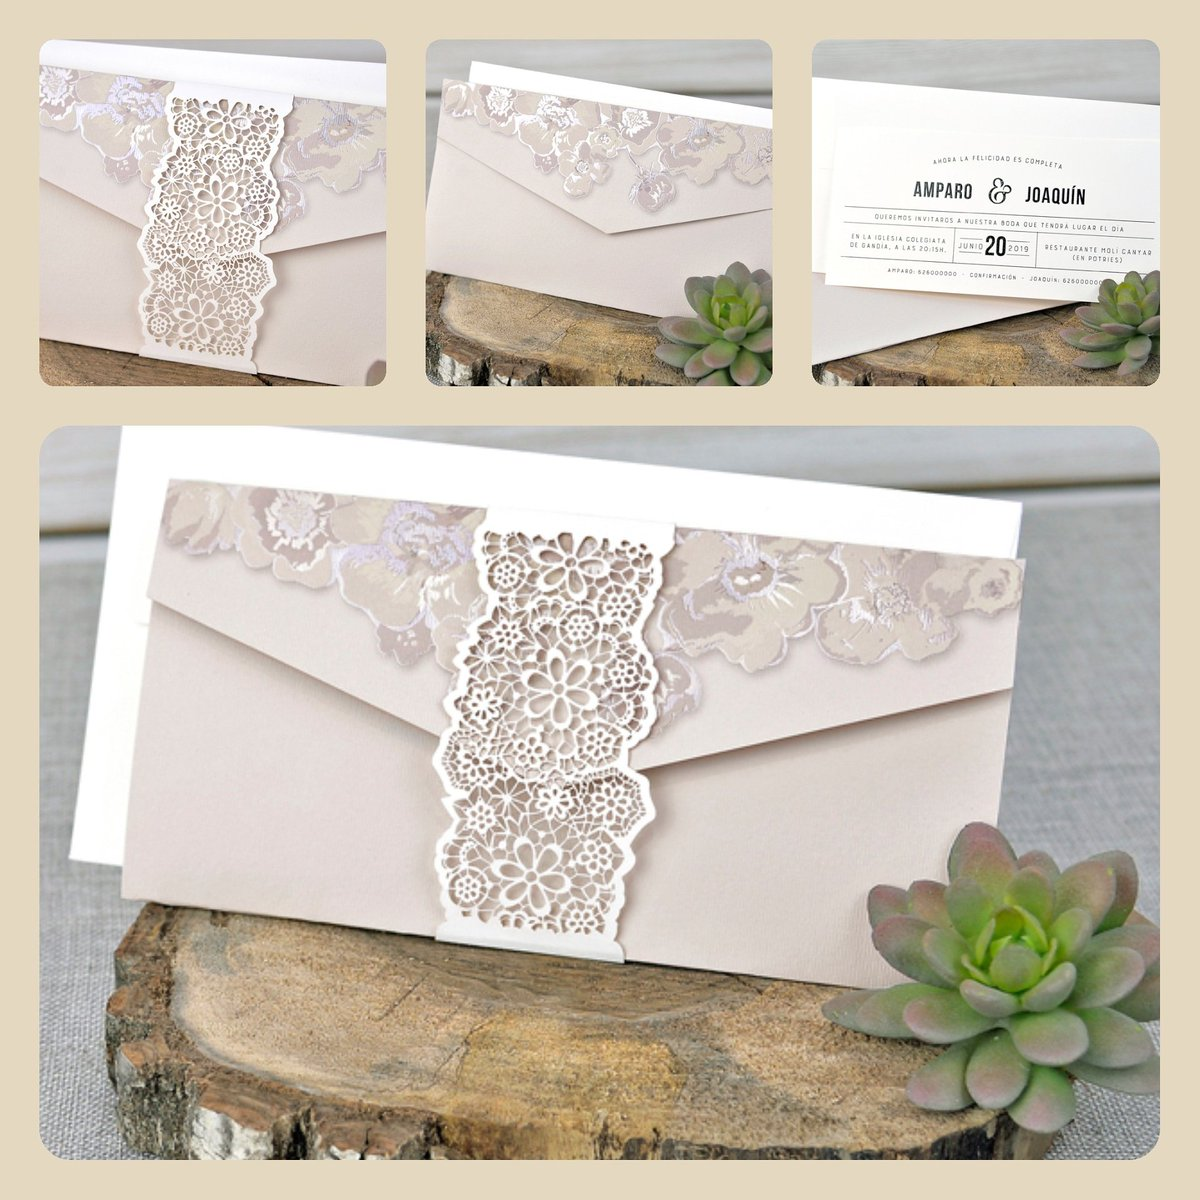 Are you looking for wedding invitation?  You can find lots of different ideas on our website https://t.co/cdzzYIMJnx #weddinginvitation #wedding #luckymarriage #uniqueinvitation #floralinvitation #special #specialinvitation #visitourwebsite #classic #classicinvitation #elegant https://t.co/IDfhzPfV8f